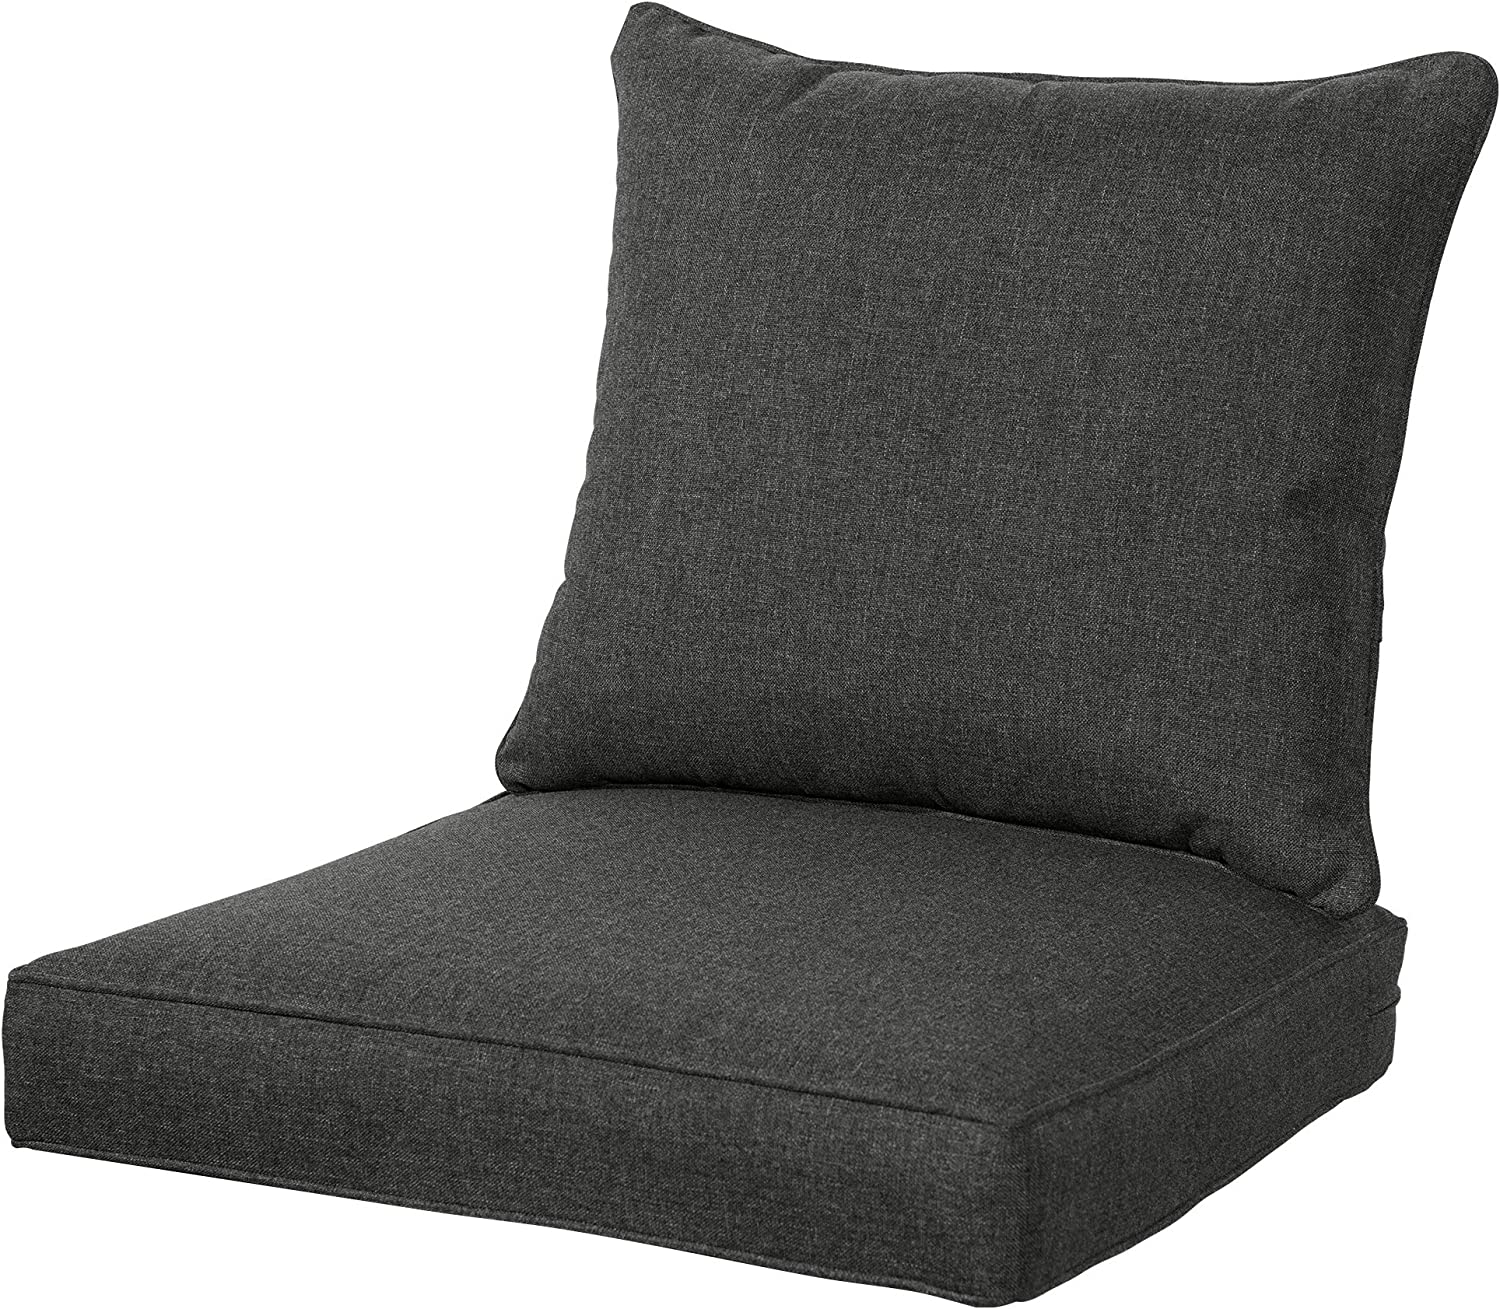 QILLOWAY Outdoor/Indoor Deep Seat Chair Cushions Set,Replacement Cushion for Patio Furniture. (Charcoal Grey/Black)